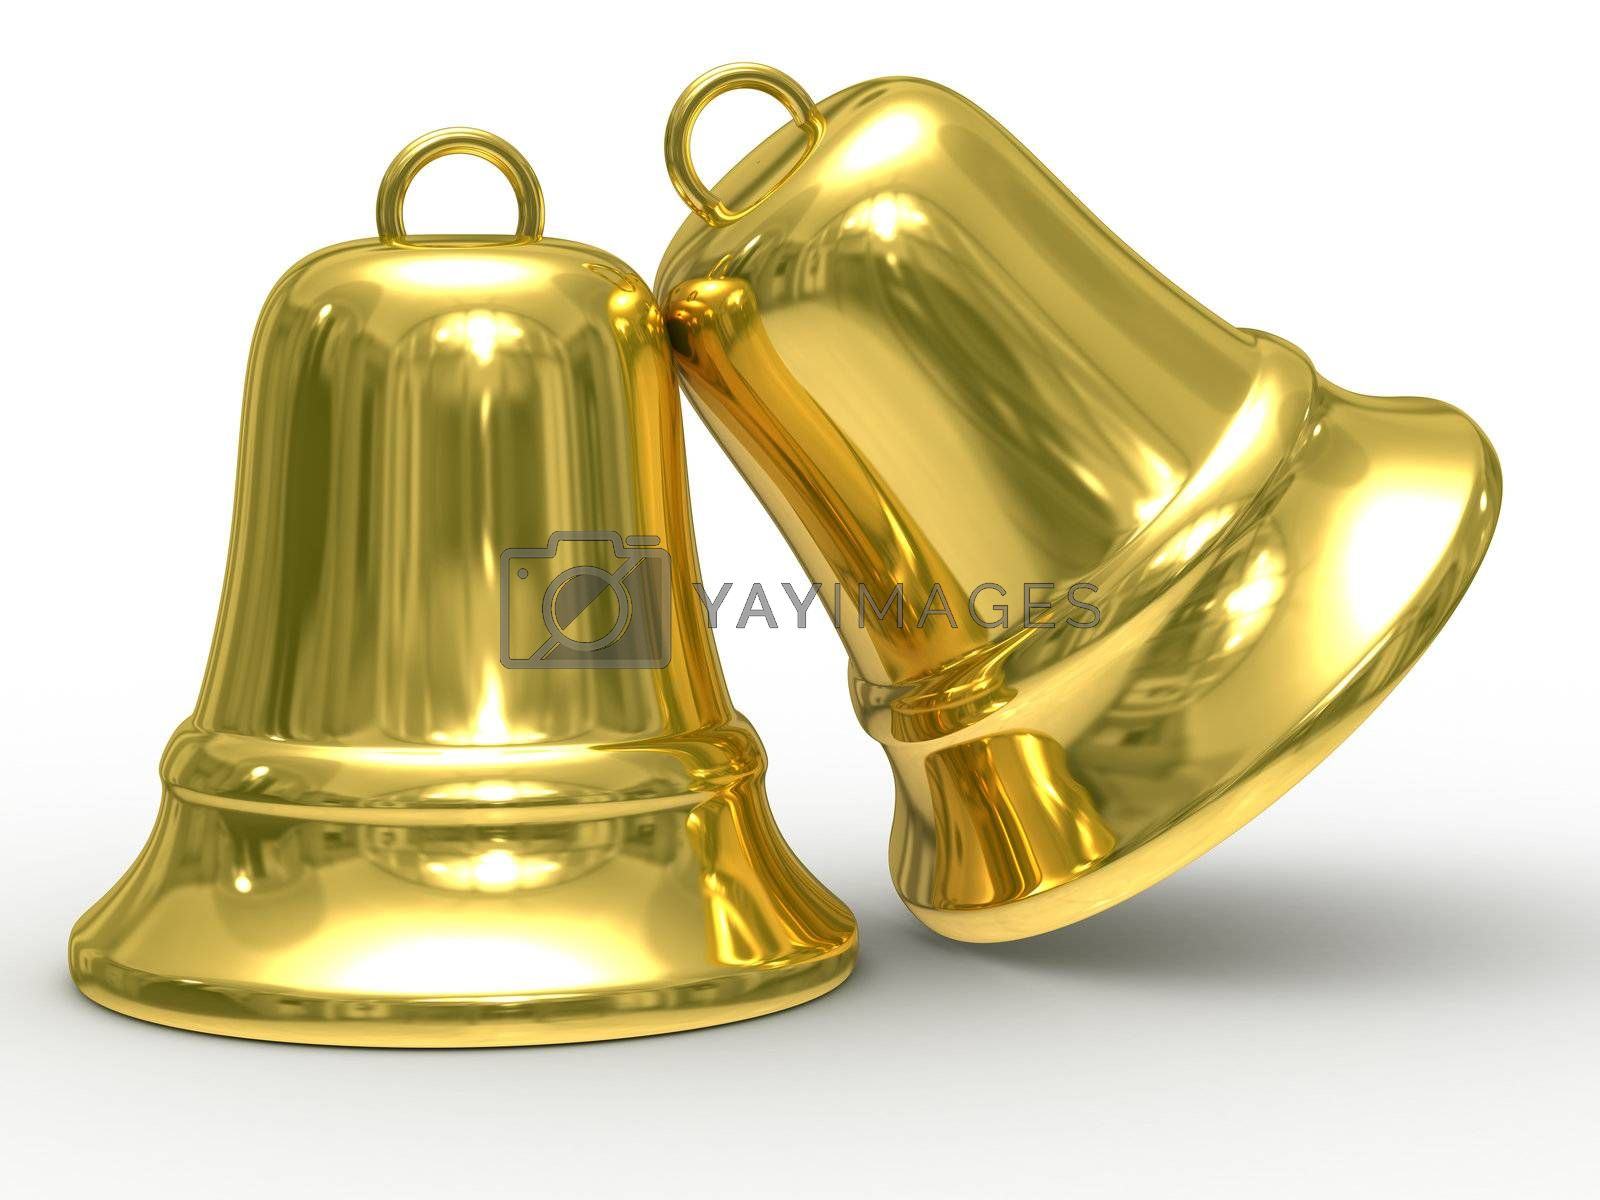 Royalty free image of Two gold hand bell on white background. Isolated 3D image. by ISerg